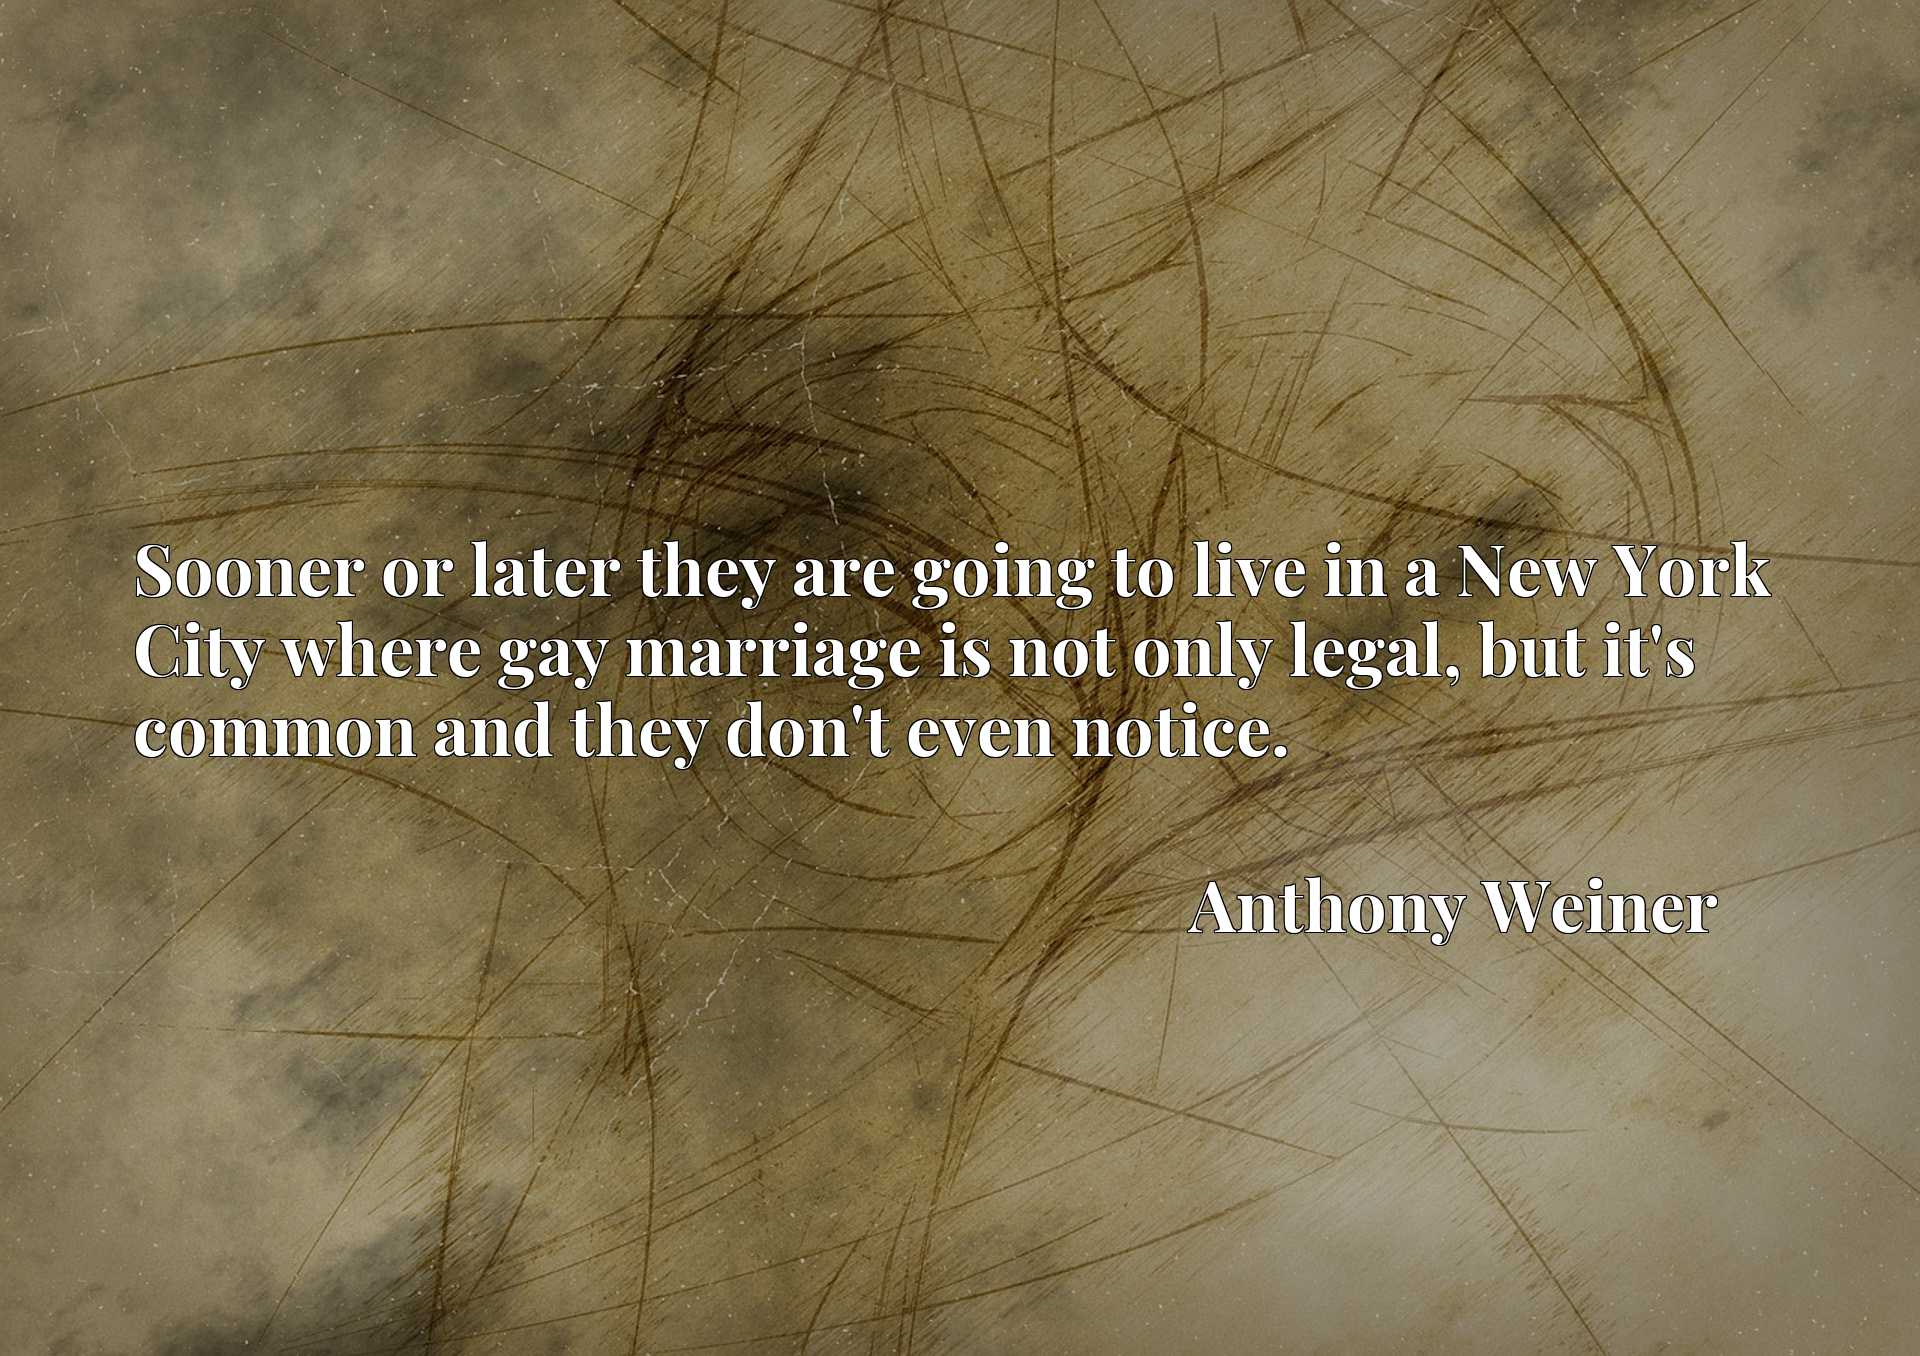 Quote Picture :Sooner or later they are going to live in a New York City where gay marriage is not only legal, but it's common and they don't even notice.